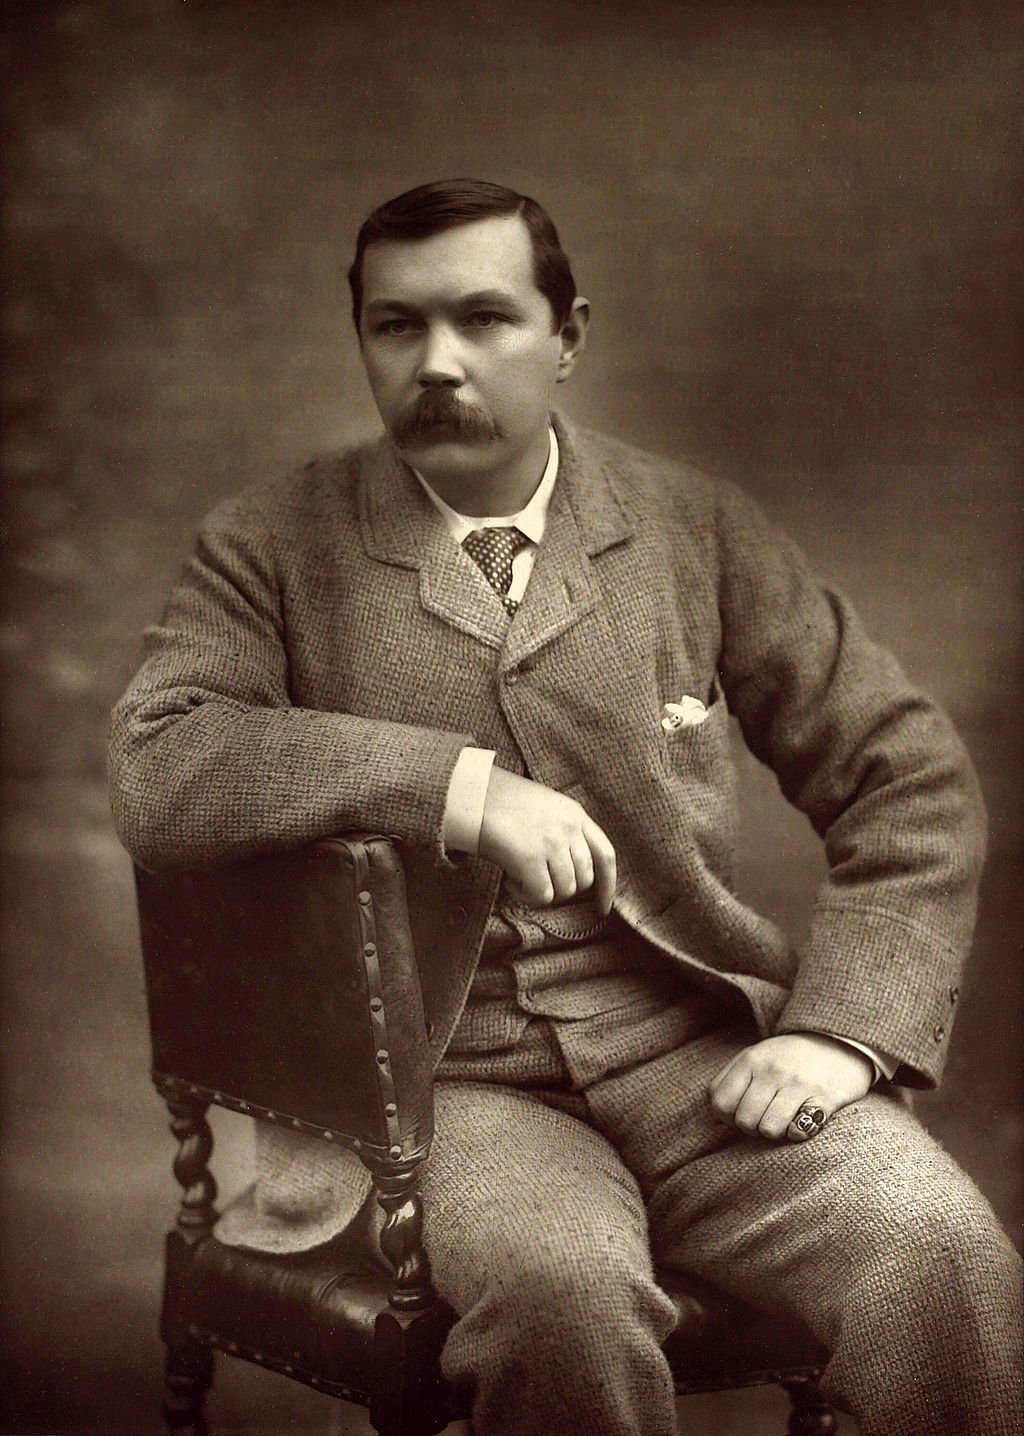 Arthur_Conan_Doyle_by_Herbert_Rose_Barraud_1893.jpg